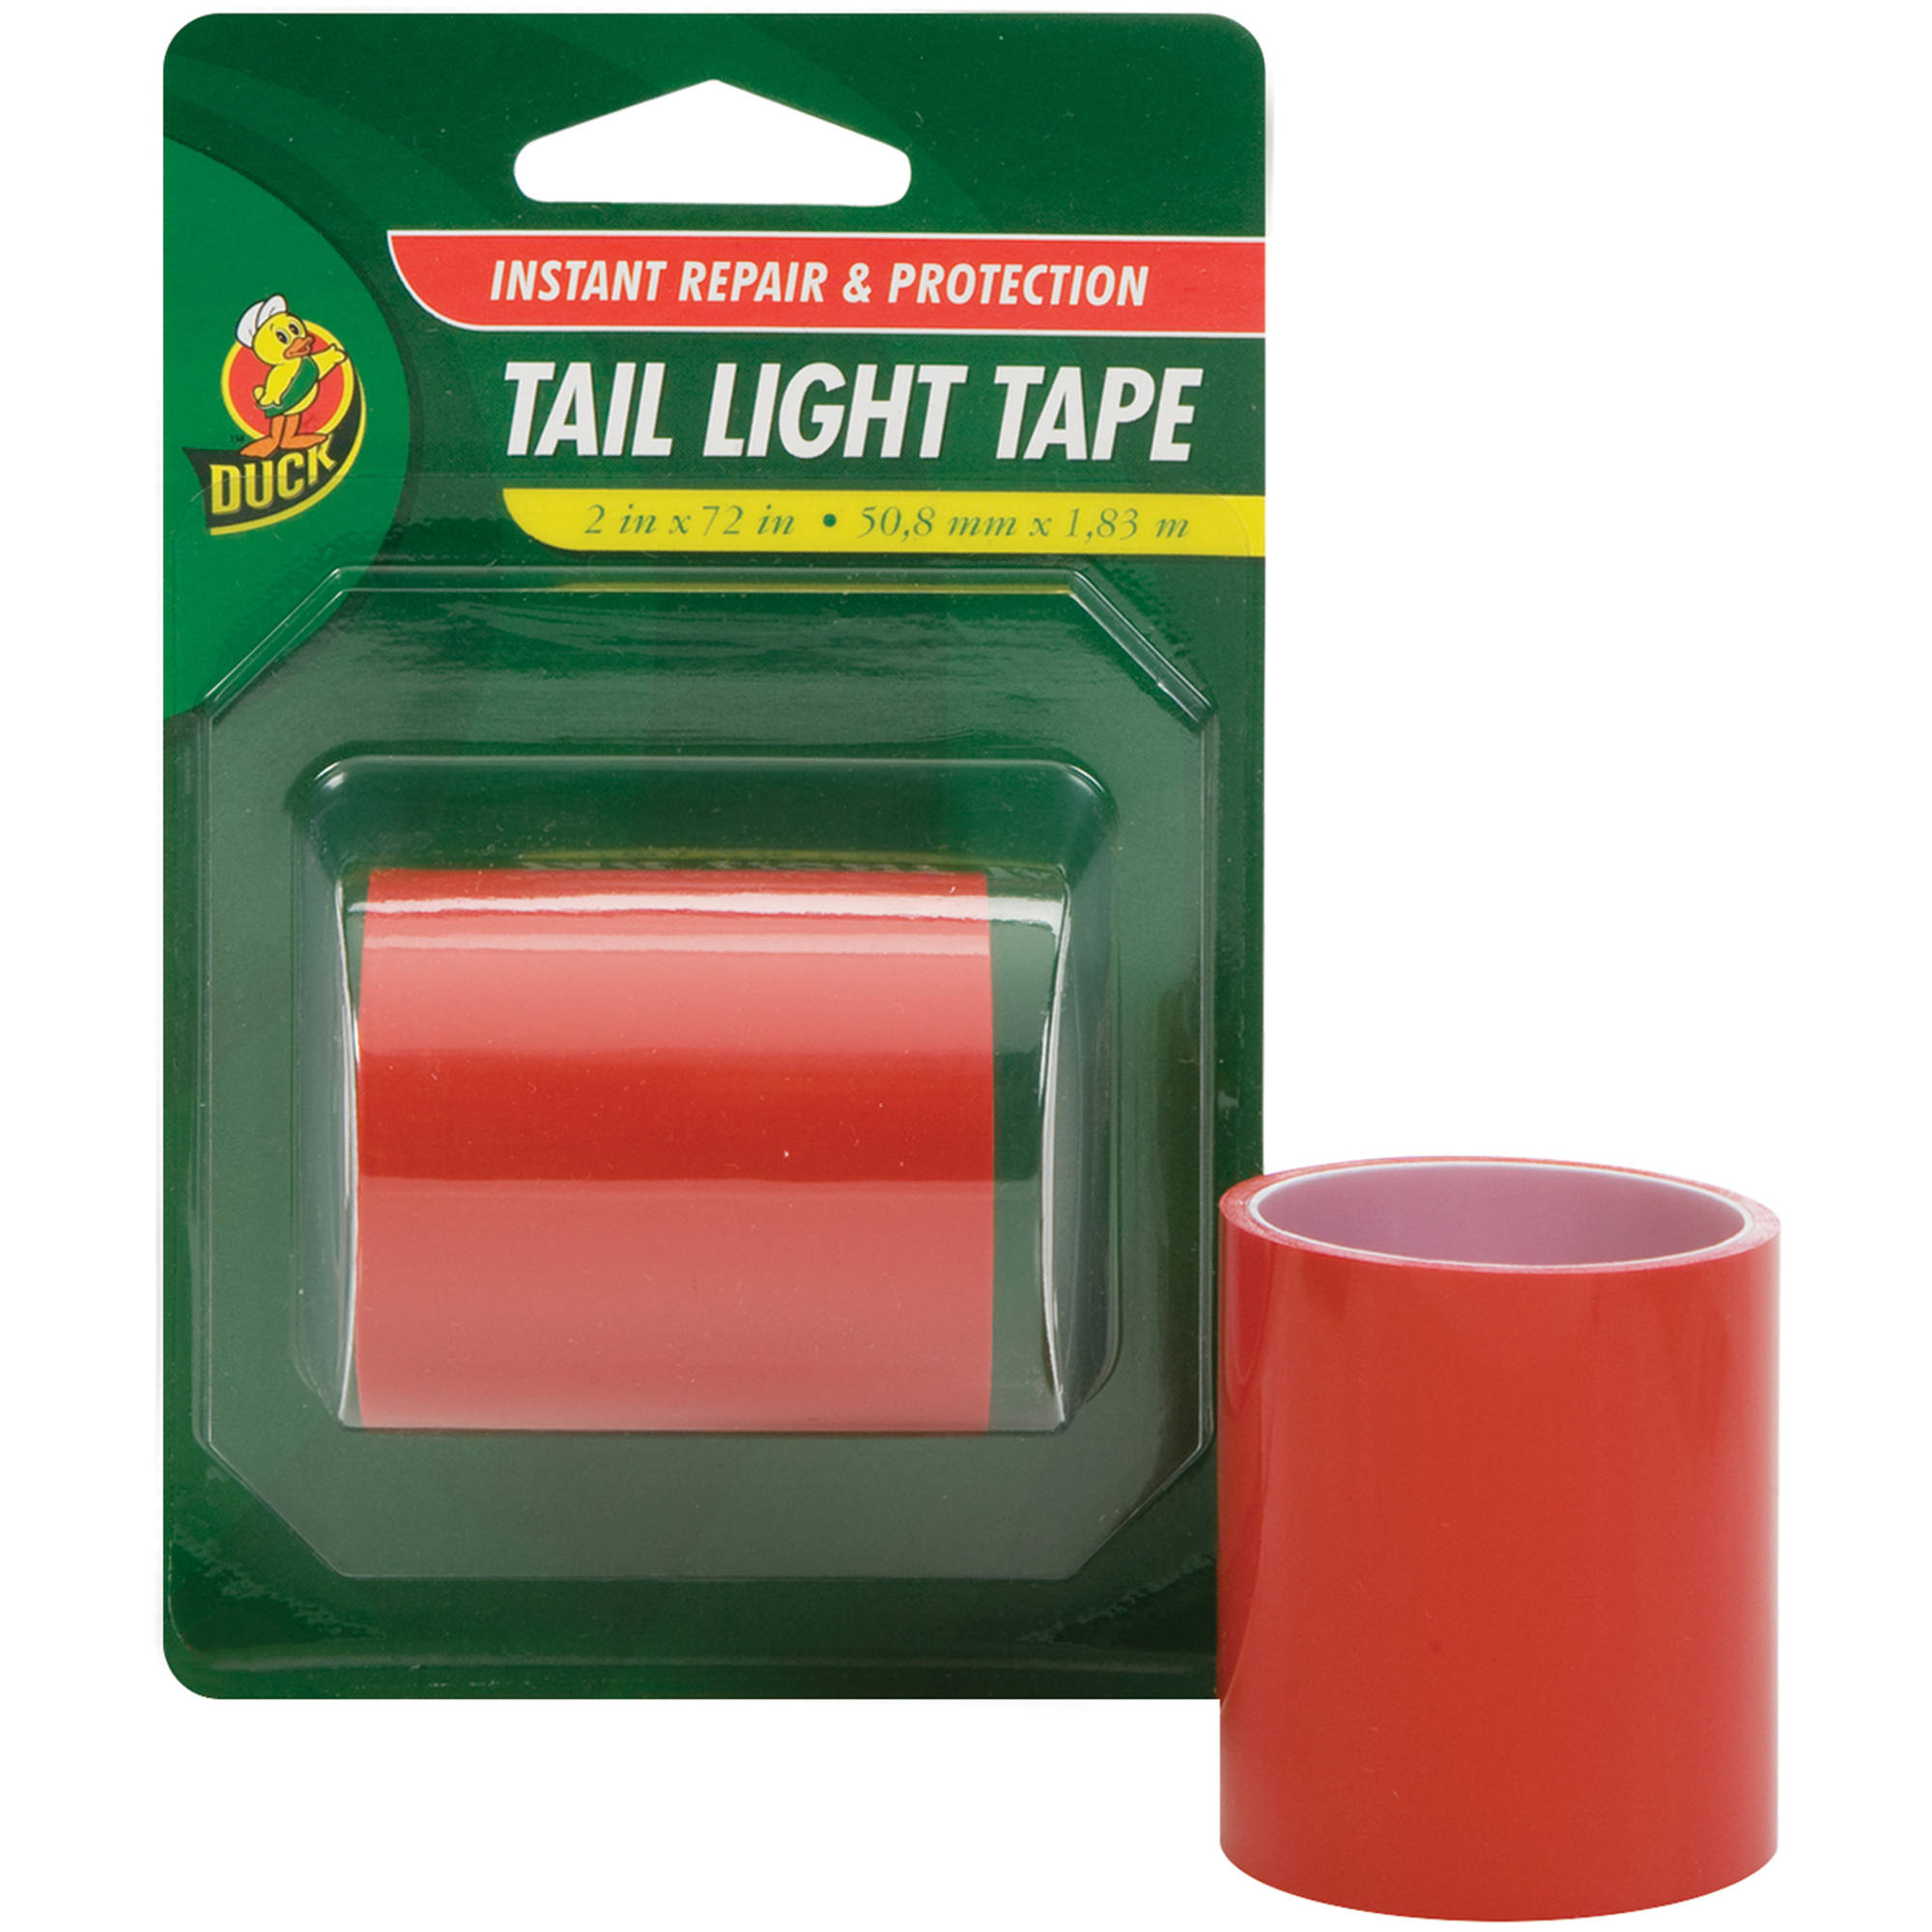 Duck Brand Translucent Tail Light Tape Red 2 X 72 Shop Categories Store Home Lights Electrical Turn Signals